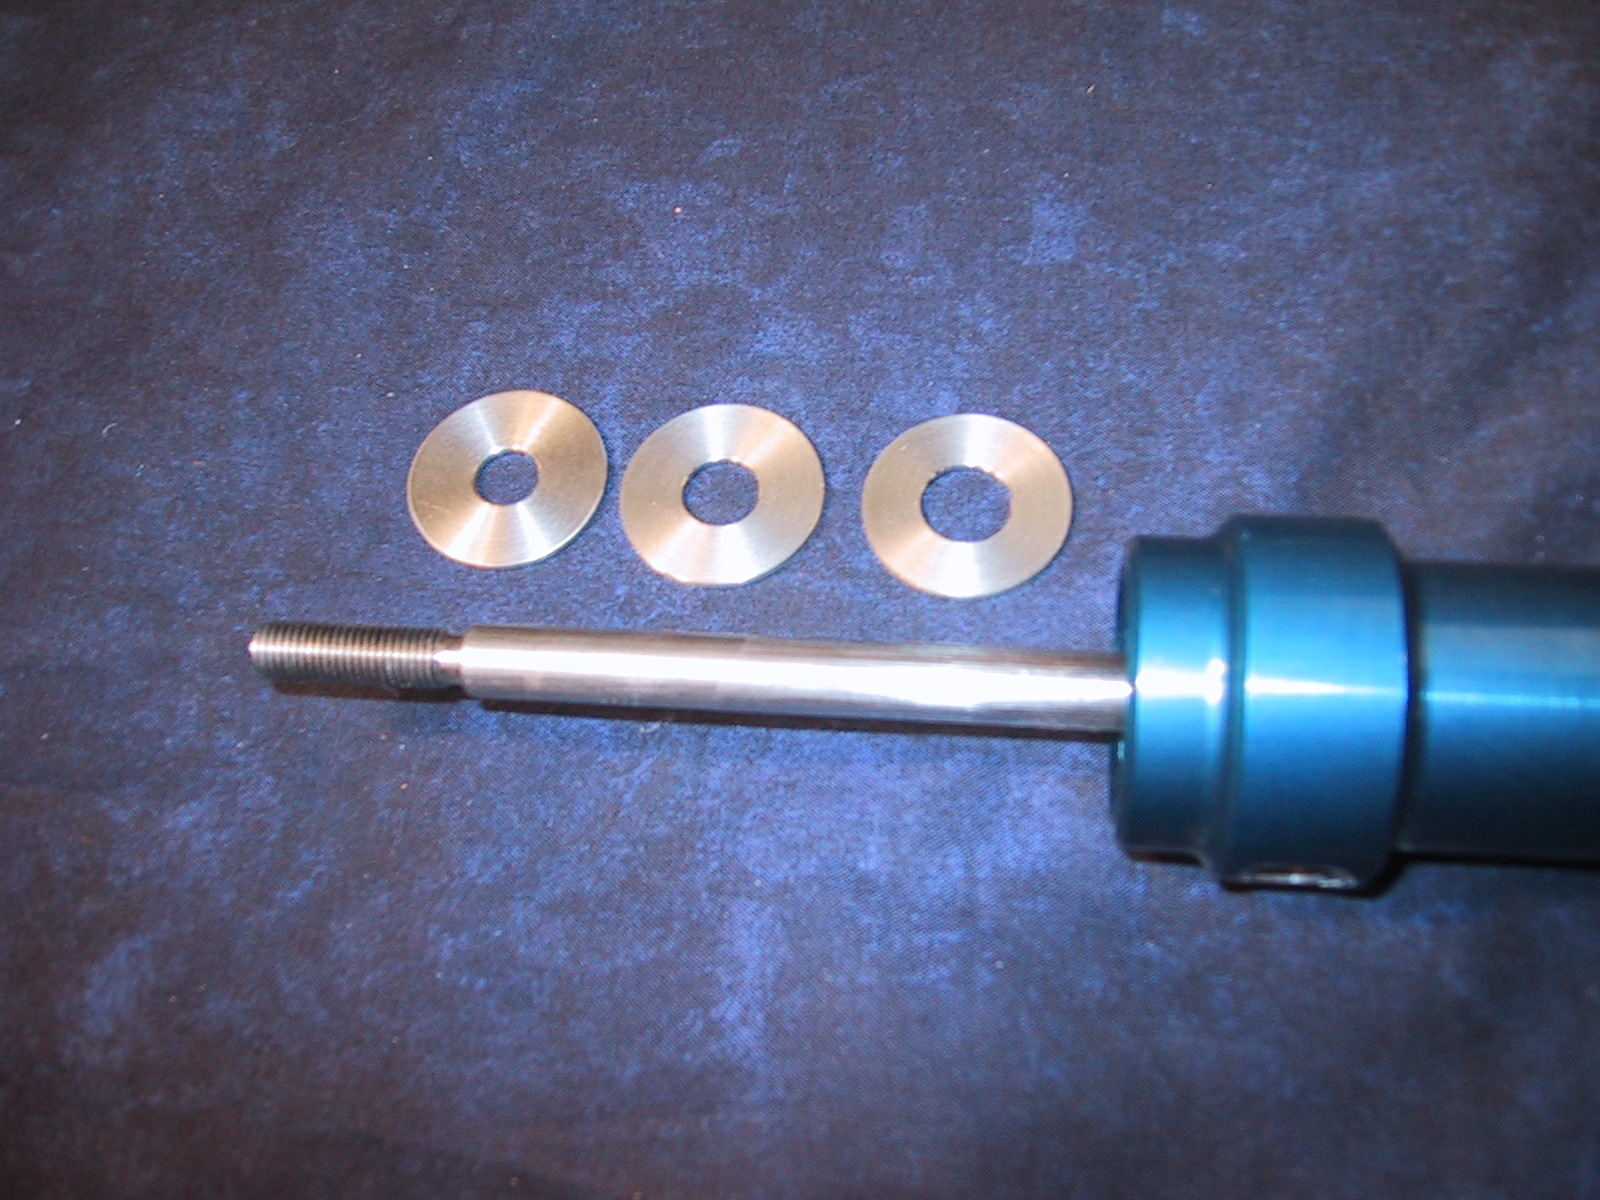 """Glasair has in stock three different number stainless steel washers. The (522-5626-003) washer has a 3/8"""" ID inner hole for use in the G-I and II main gear retract actuators which also have a 3/8"""" shaft. The (522-5626-001) washer has a 7/16"""" ID hole for use in the G-I and II nose gear actuator and the G-III main gear actuators. The (522-5626-005) washer has a ½"""" ID for use in the G-III nose gear actuator."""